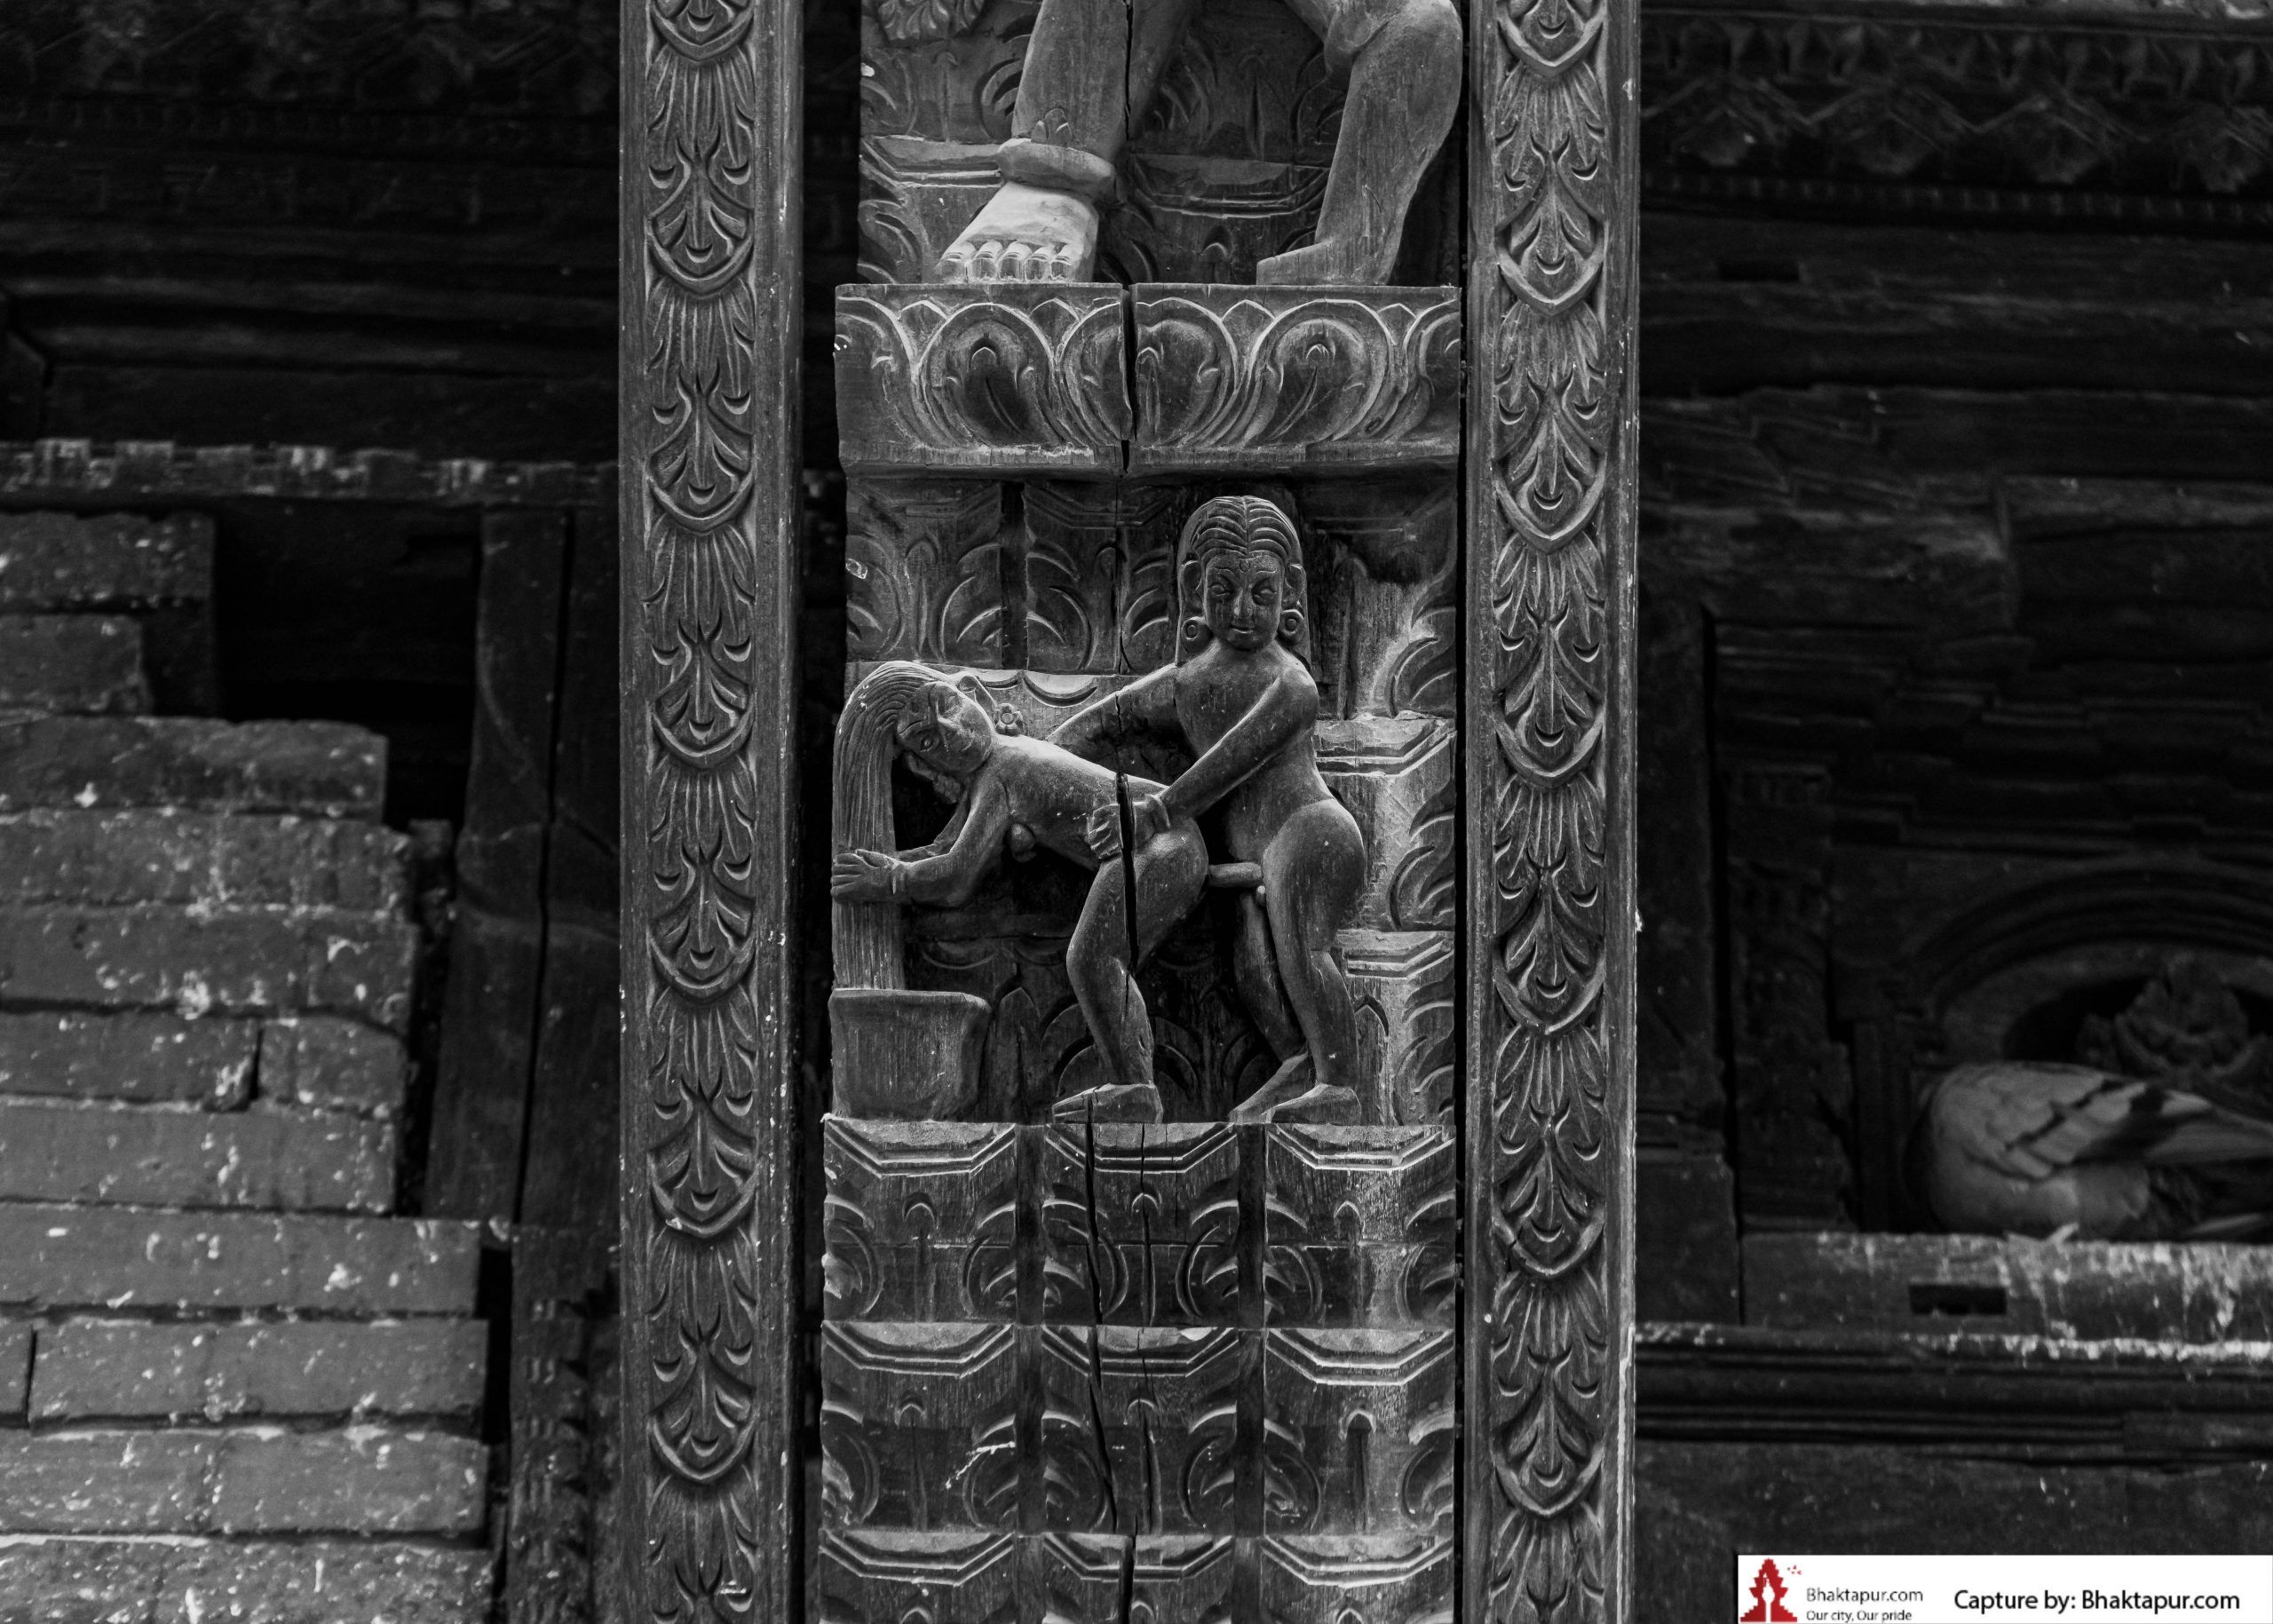 https://www.bhaktapur.com/wp-content/uploads/2021/08/erotic-carving-109-of-137-scaled.jpg